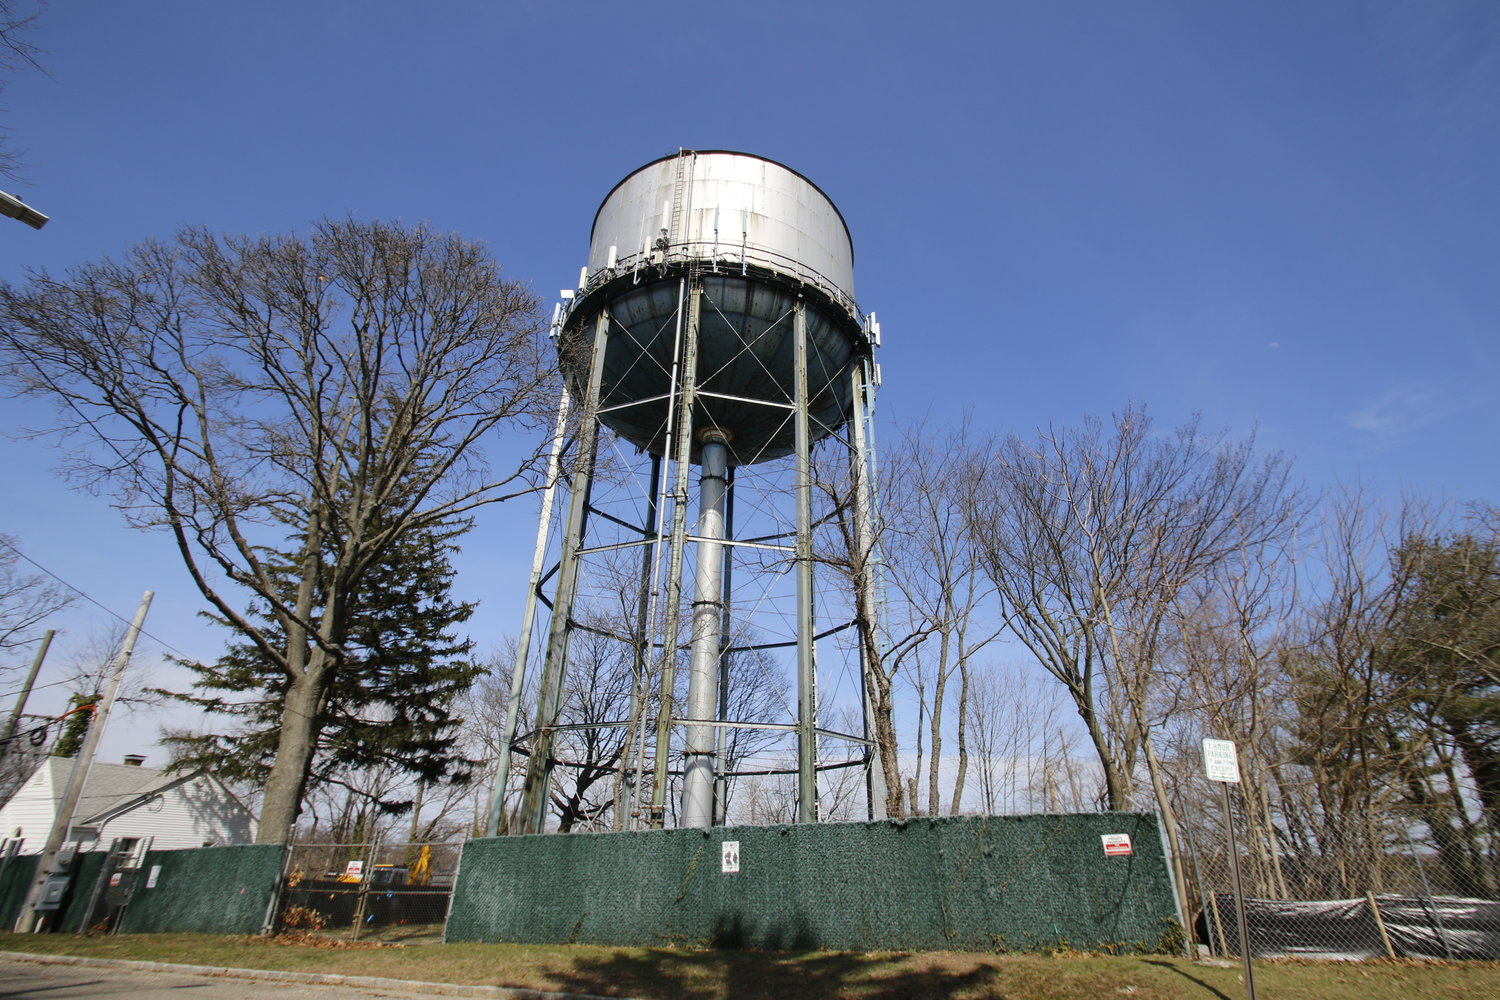 American Water Works Co. announced in a release Wednesday that it would sell its New York operation to Liberty Utilities for $608 million cash.